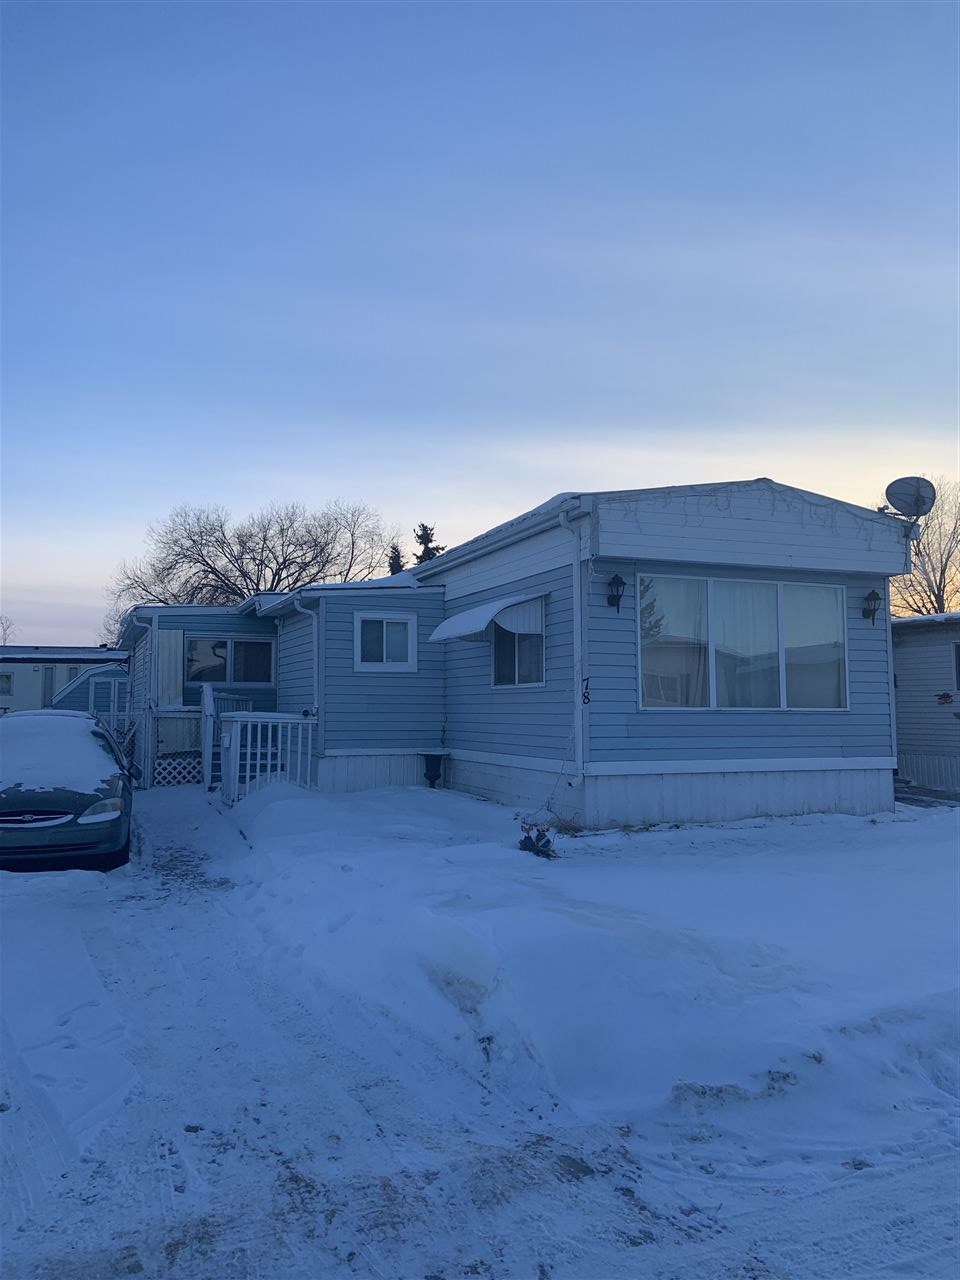 78 4202 45 Street, 4 bed, 1 bath, at $29,995